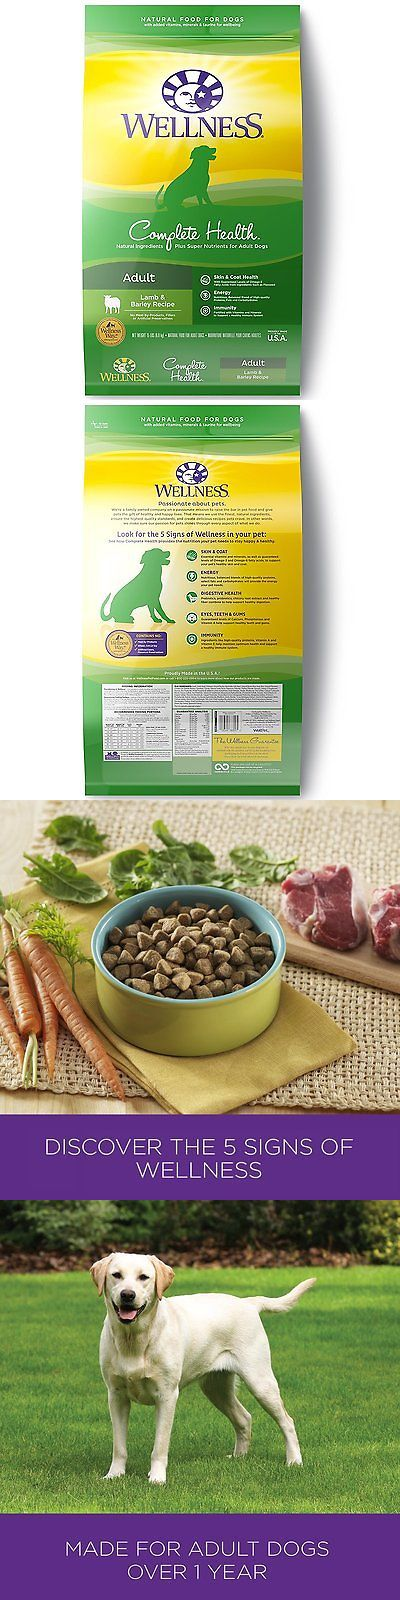 Dog Food 66780: Wellness Complete Health Natural Dry Dog Food, Lamb And Barley, 15-Pound Bag -> BUY IT NOW ONLY: $38.61 on eBay!